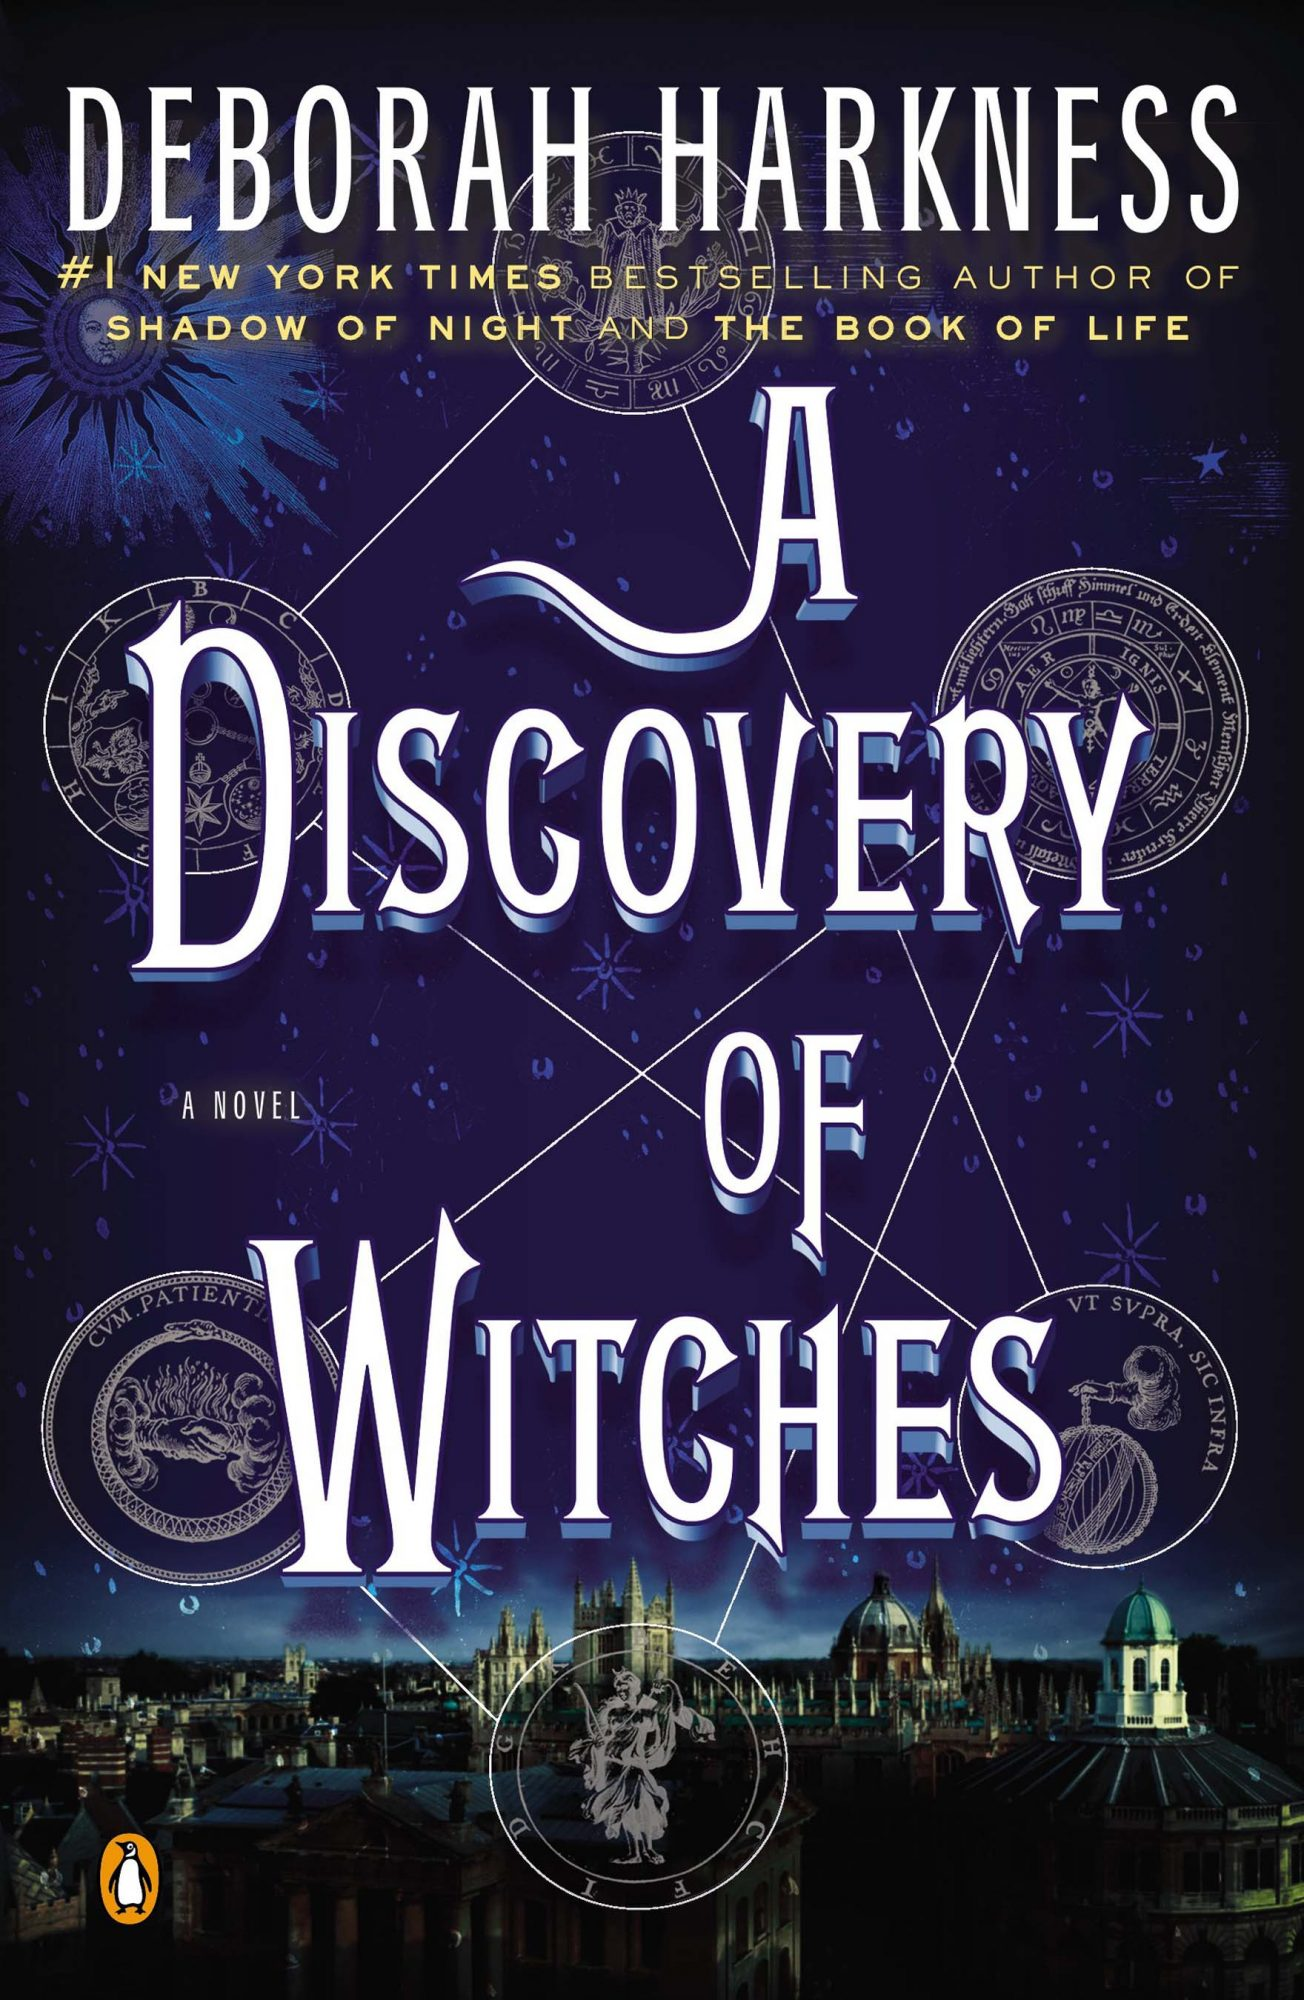 a-discovery-of-witches-a-novel-all-souls-trilogy-book-1_12854069